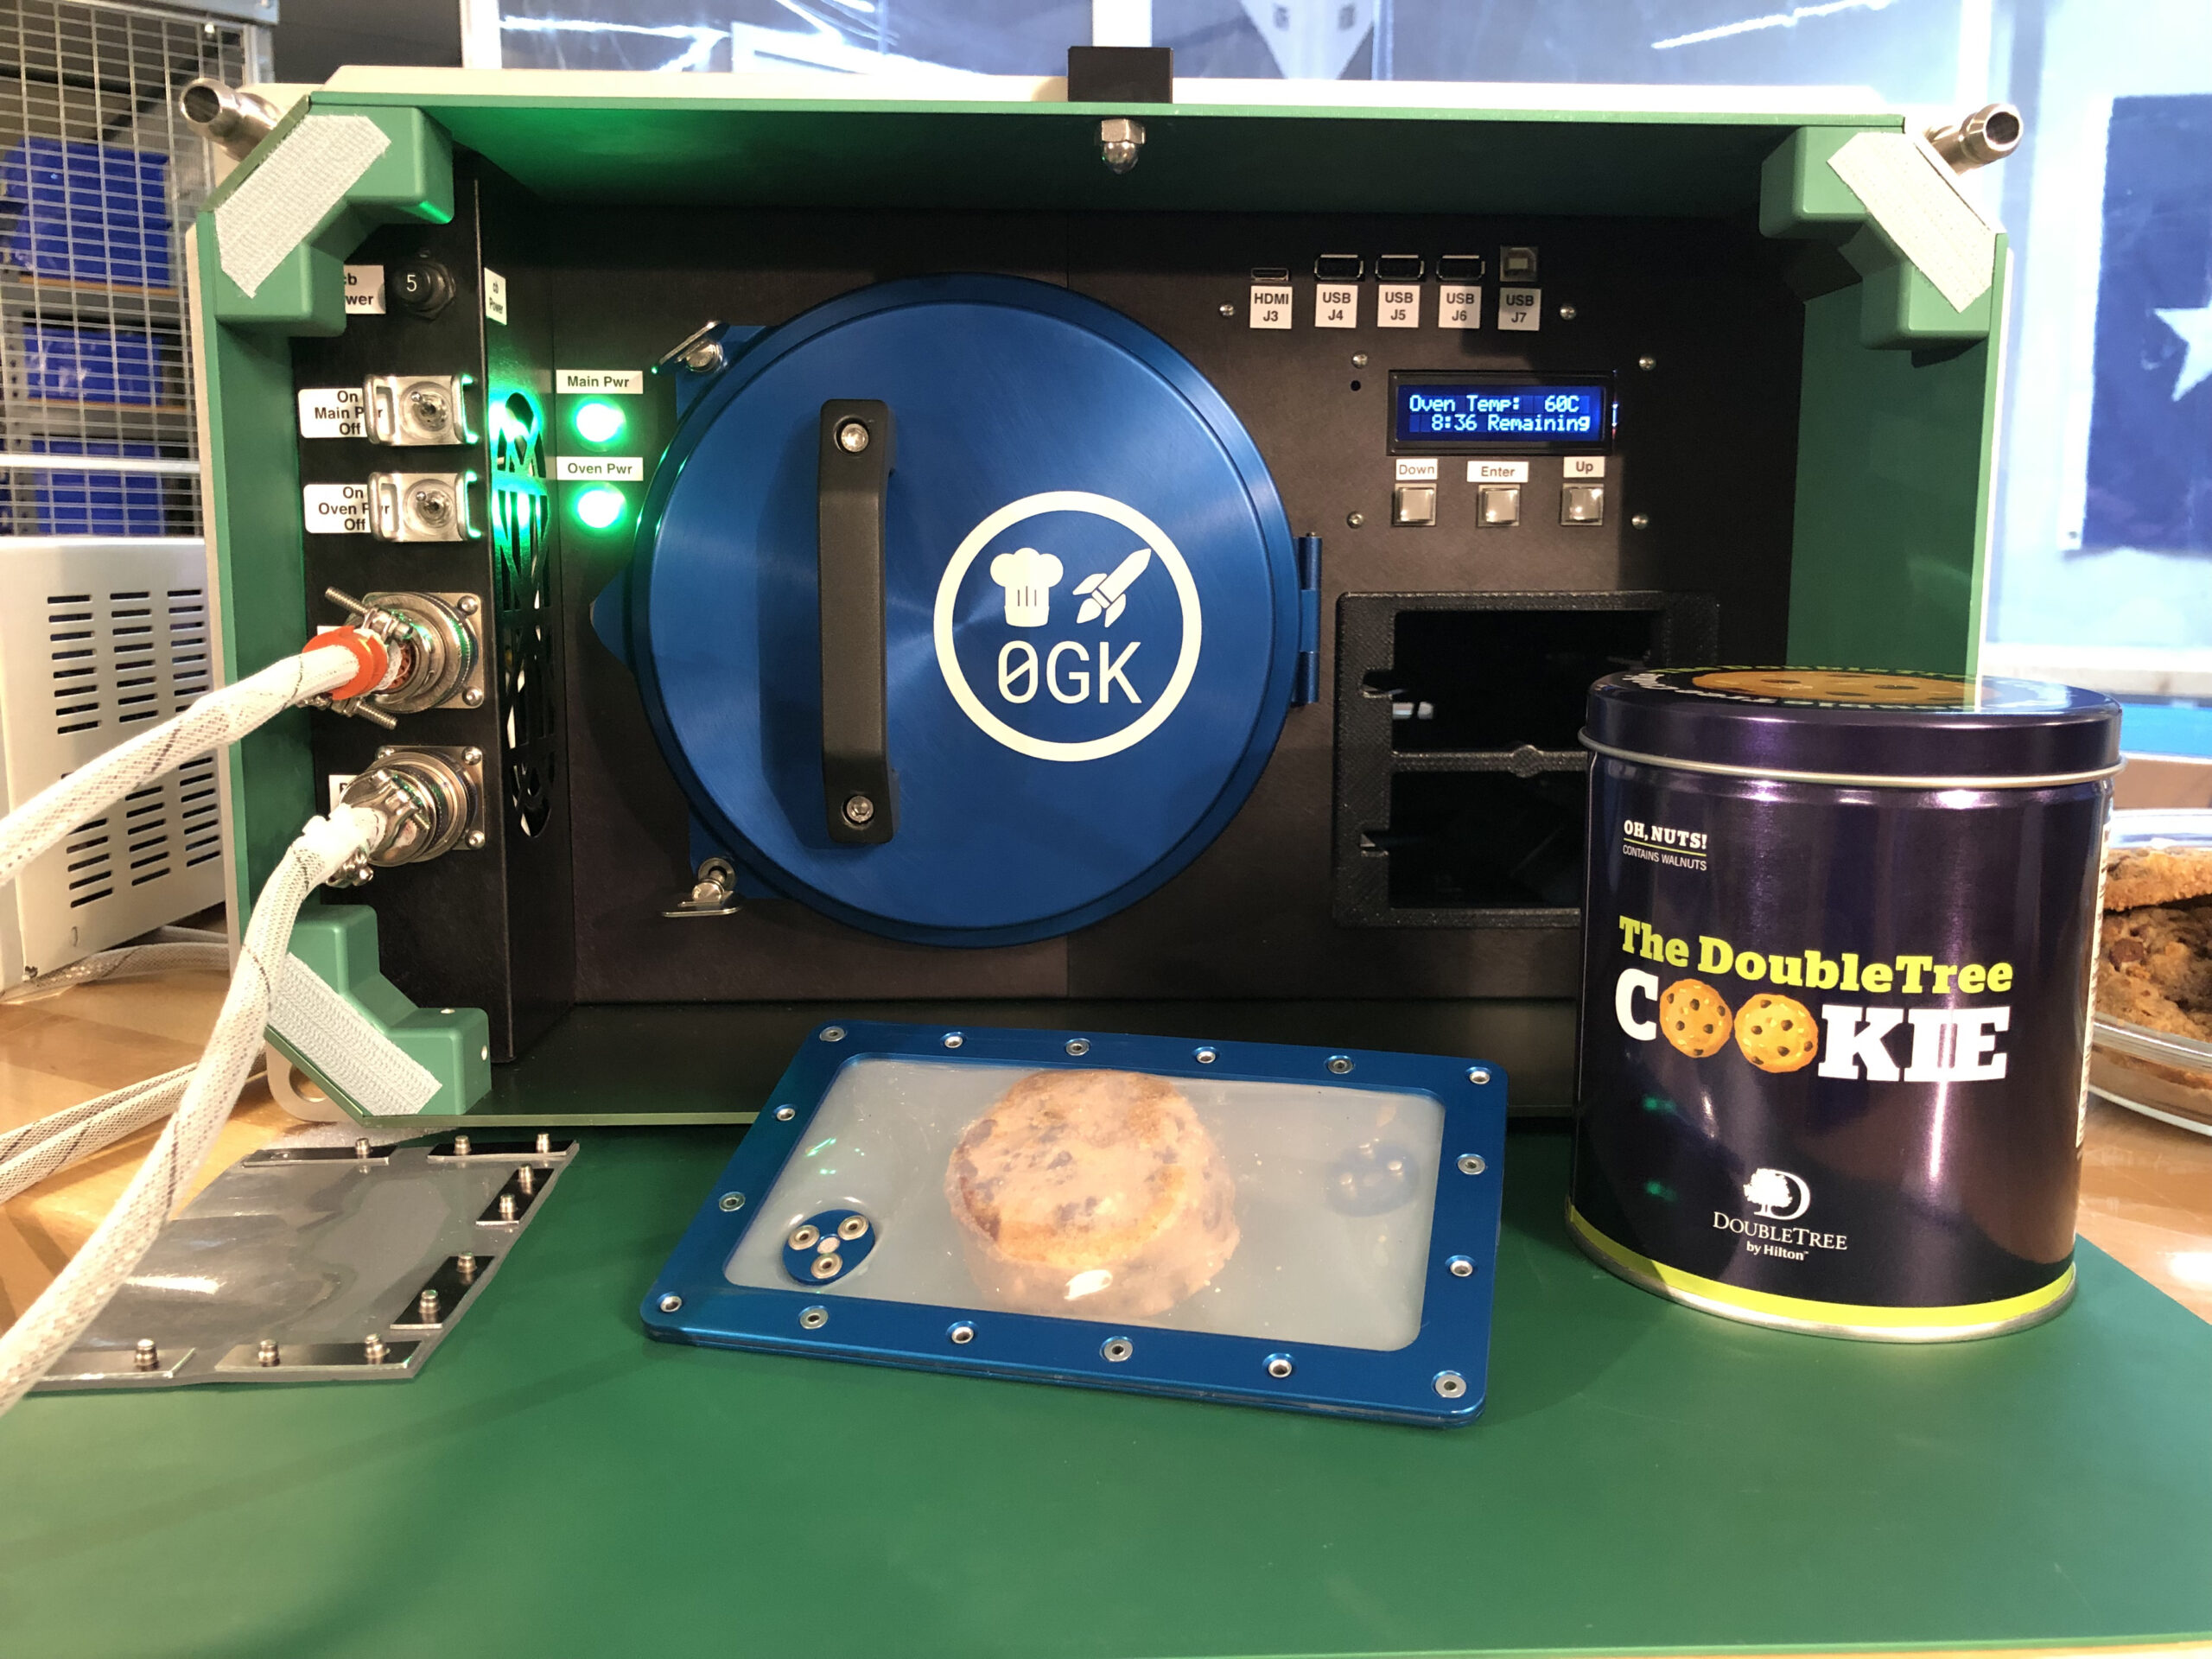 Doubletree hotel cookie baking on ISS in Zero G Space Oven